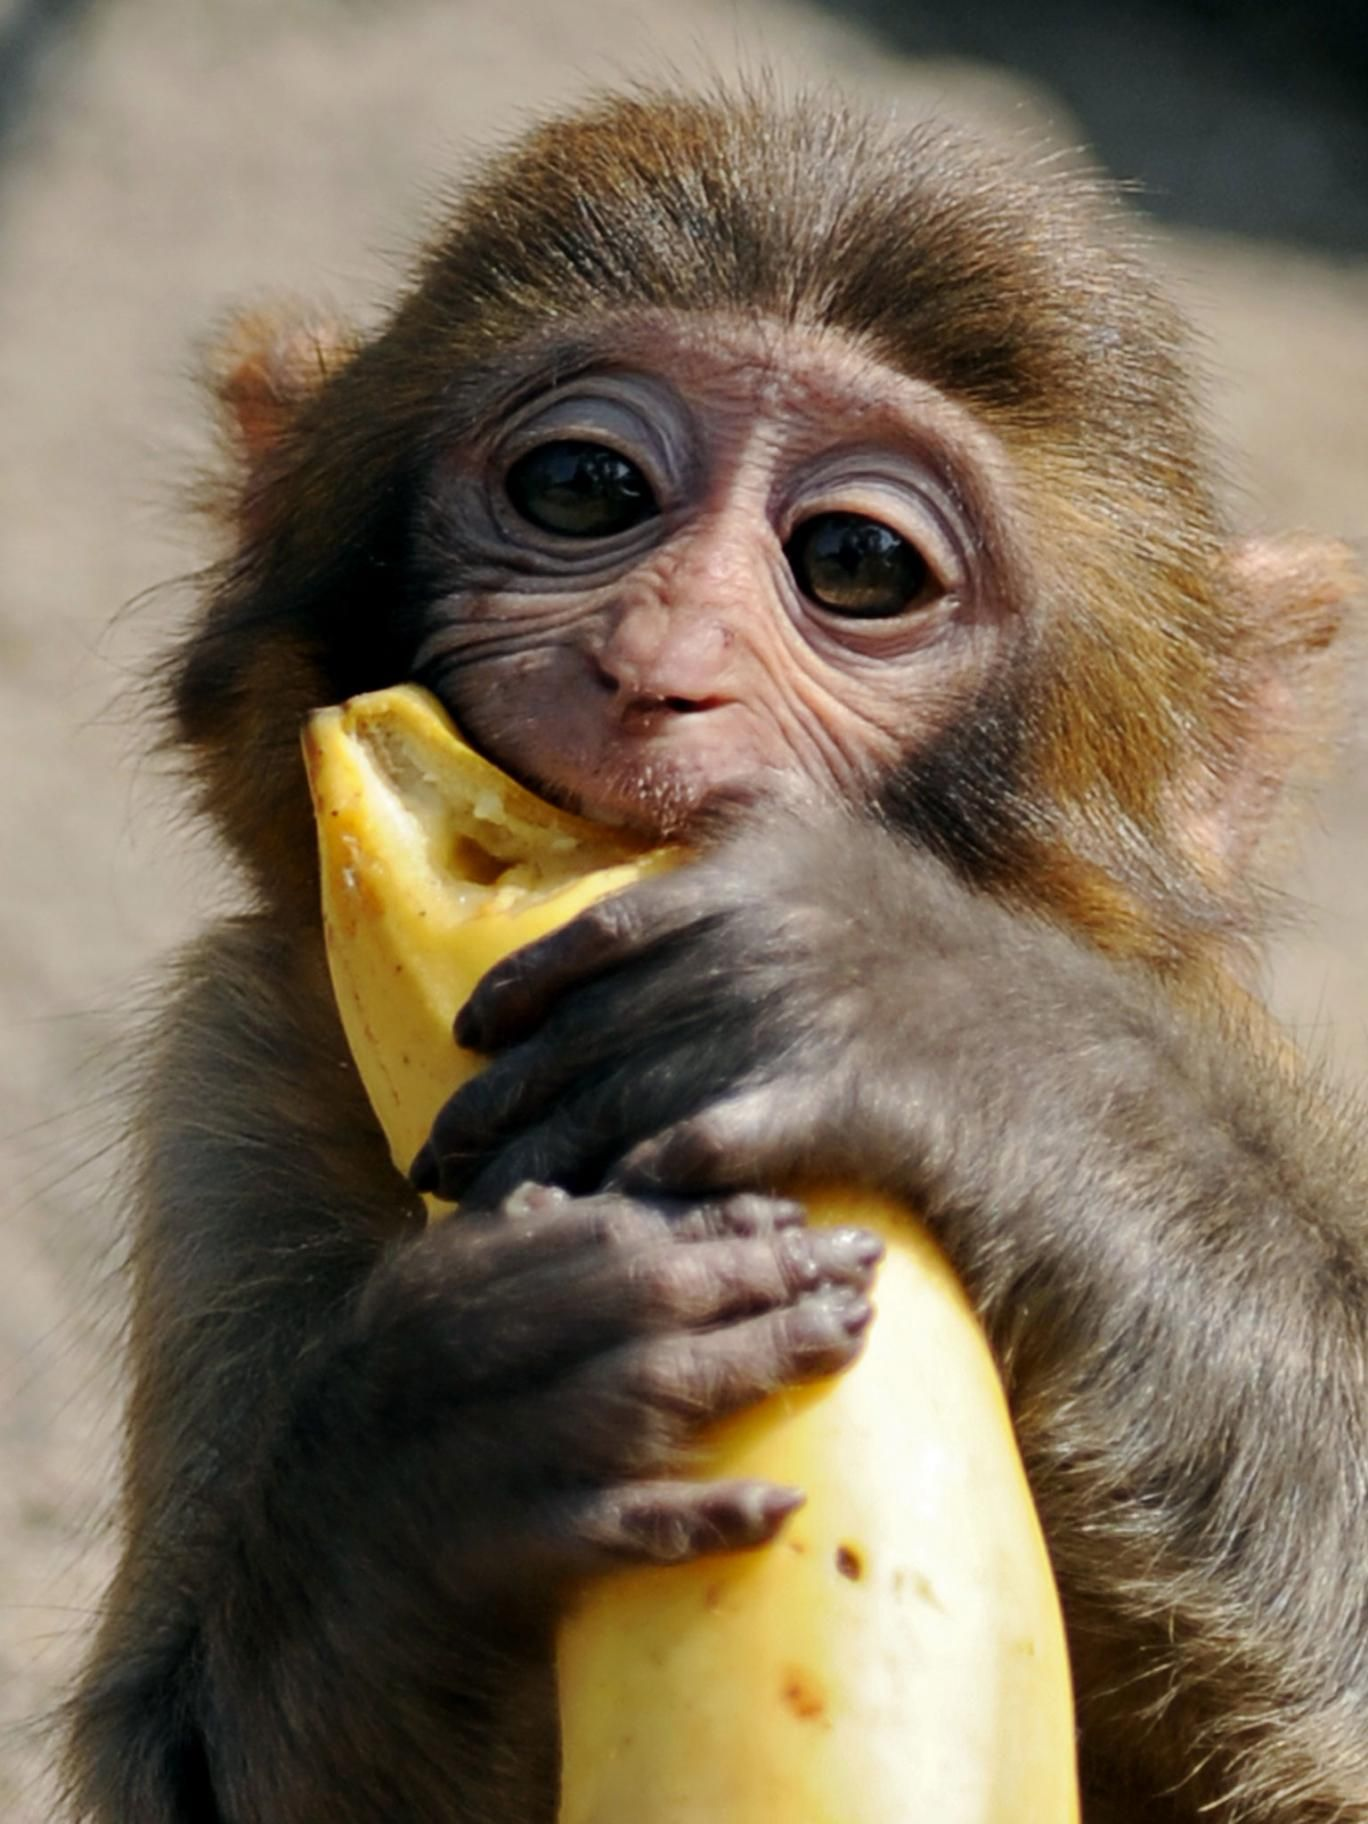 Zookeepers At Paignton Zoo In Devon Have Banned Monkeys From